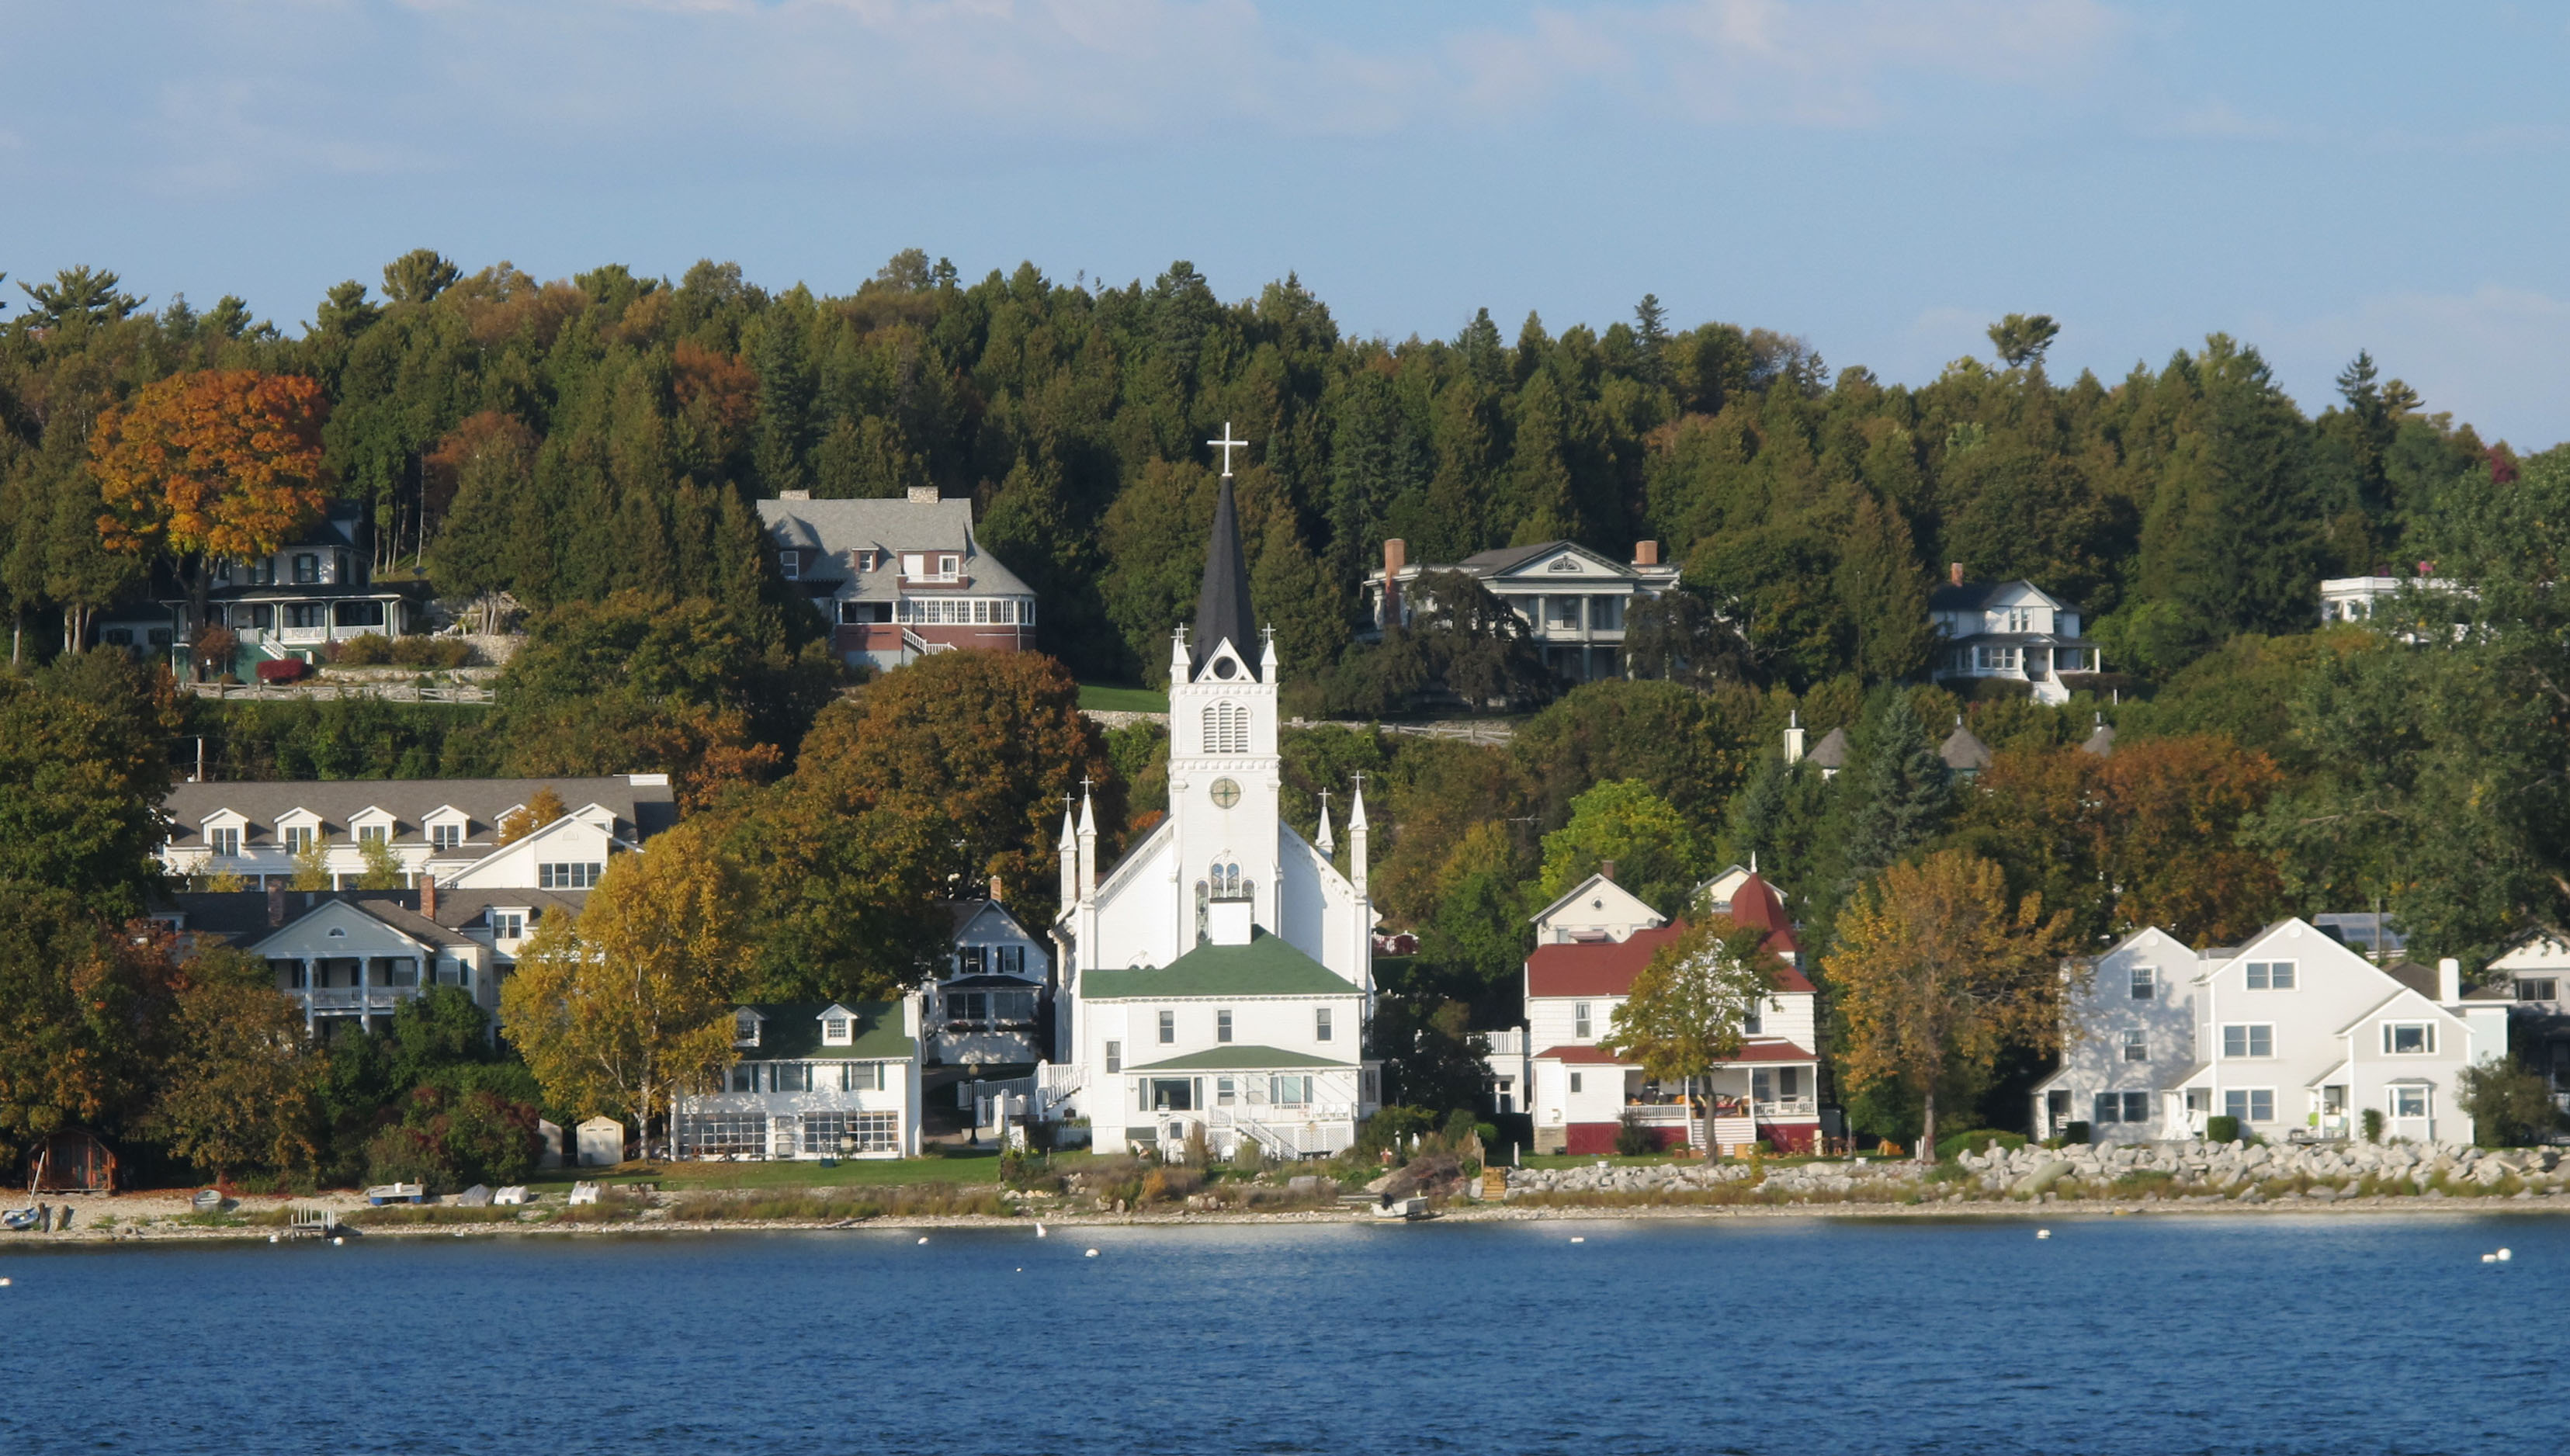 mackinac island Hotels in mackinac island: find the best mackinac island hotels and save booking with expedia view over 127 mackinac island hotel deals and read real guest reviews to help find the perfect.